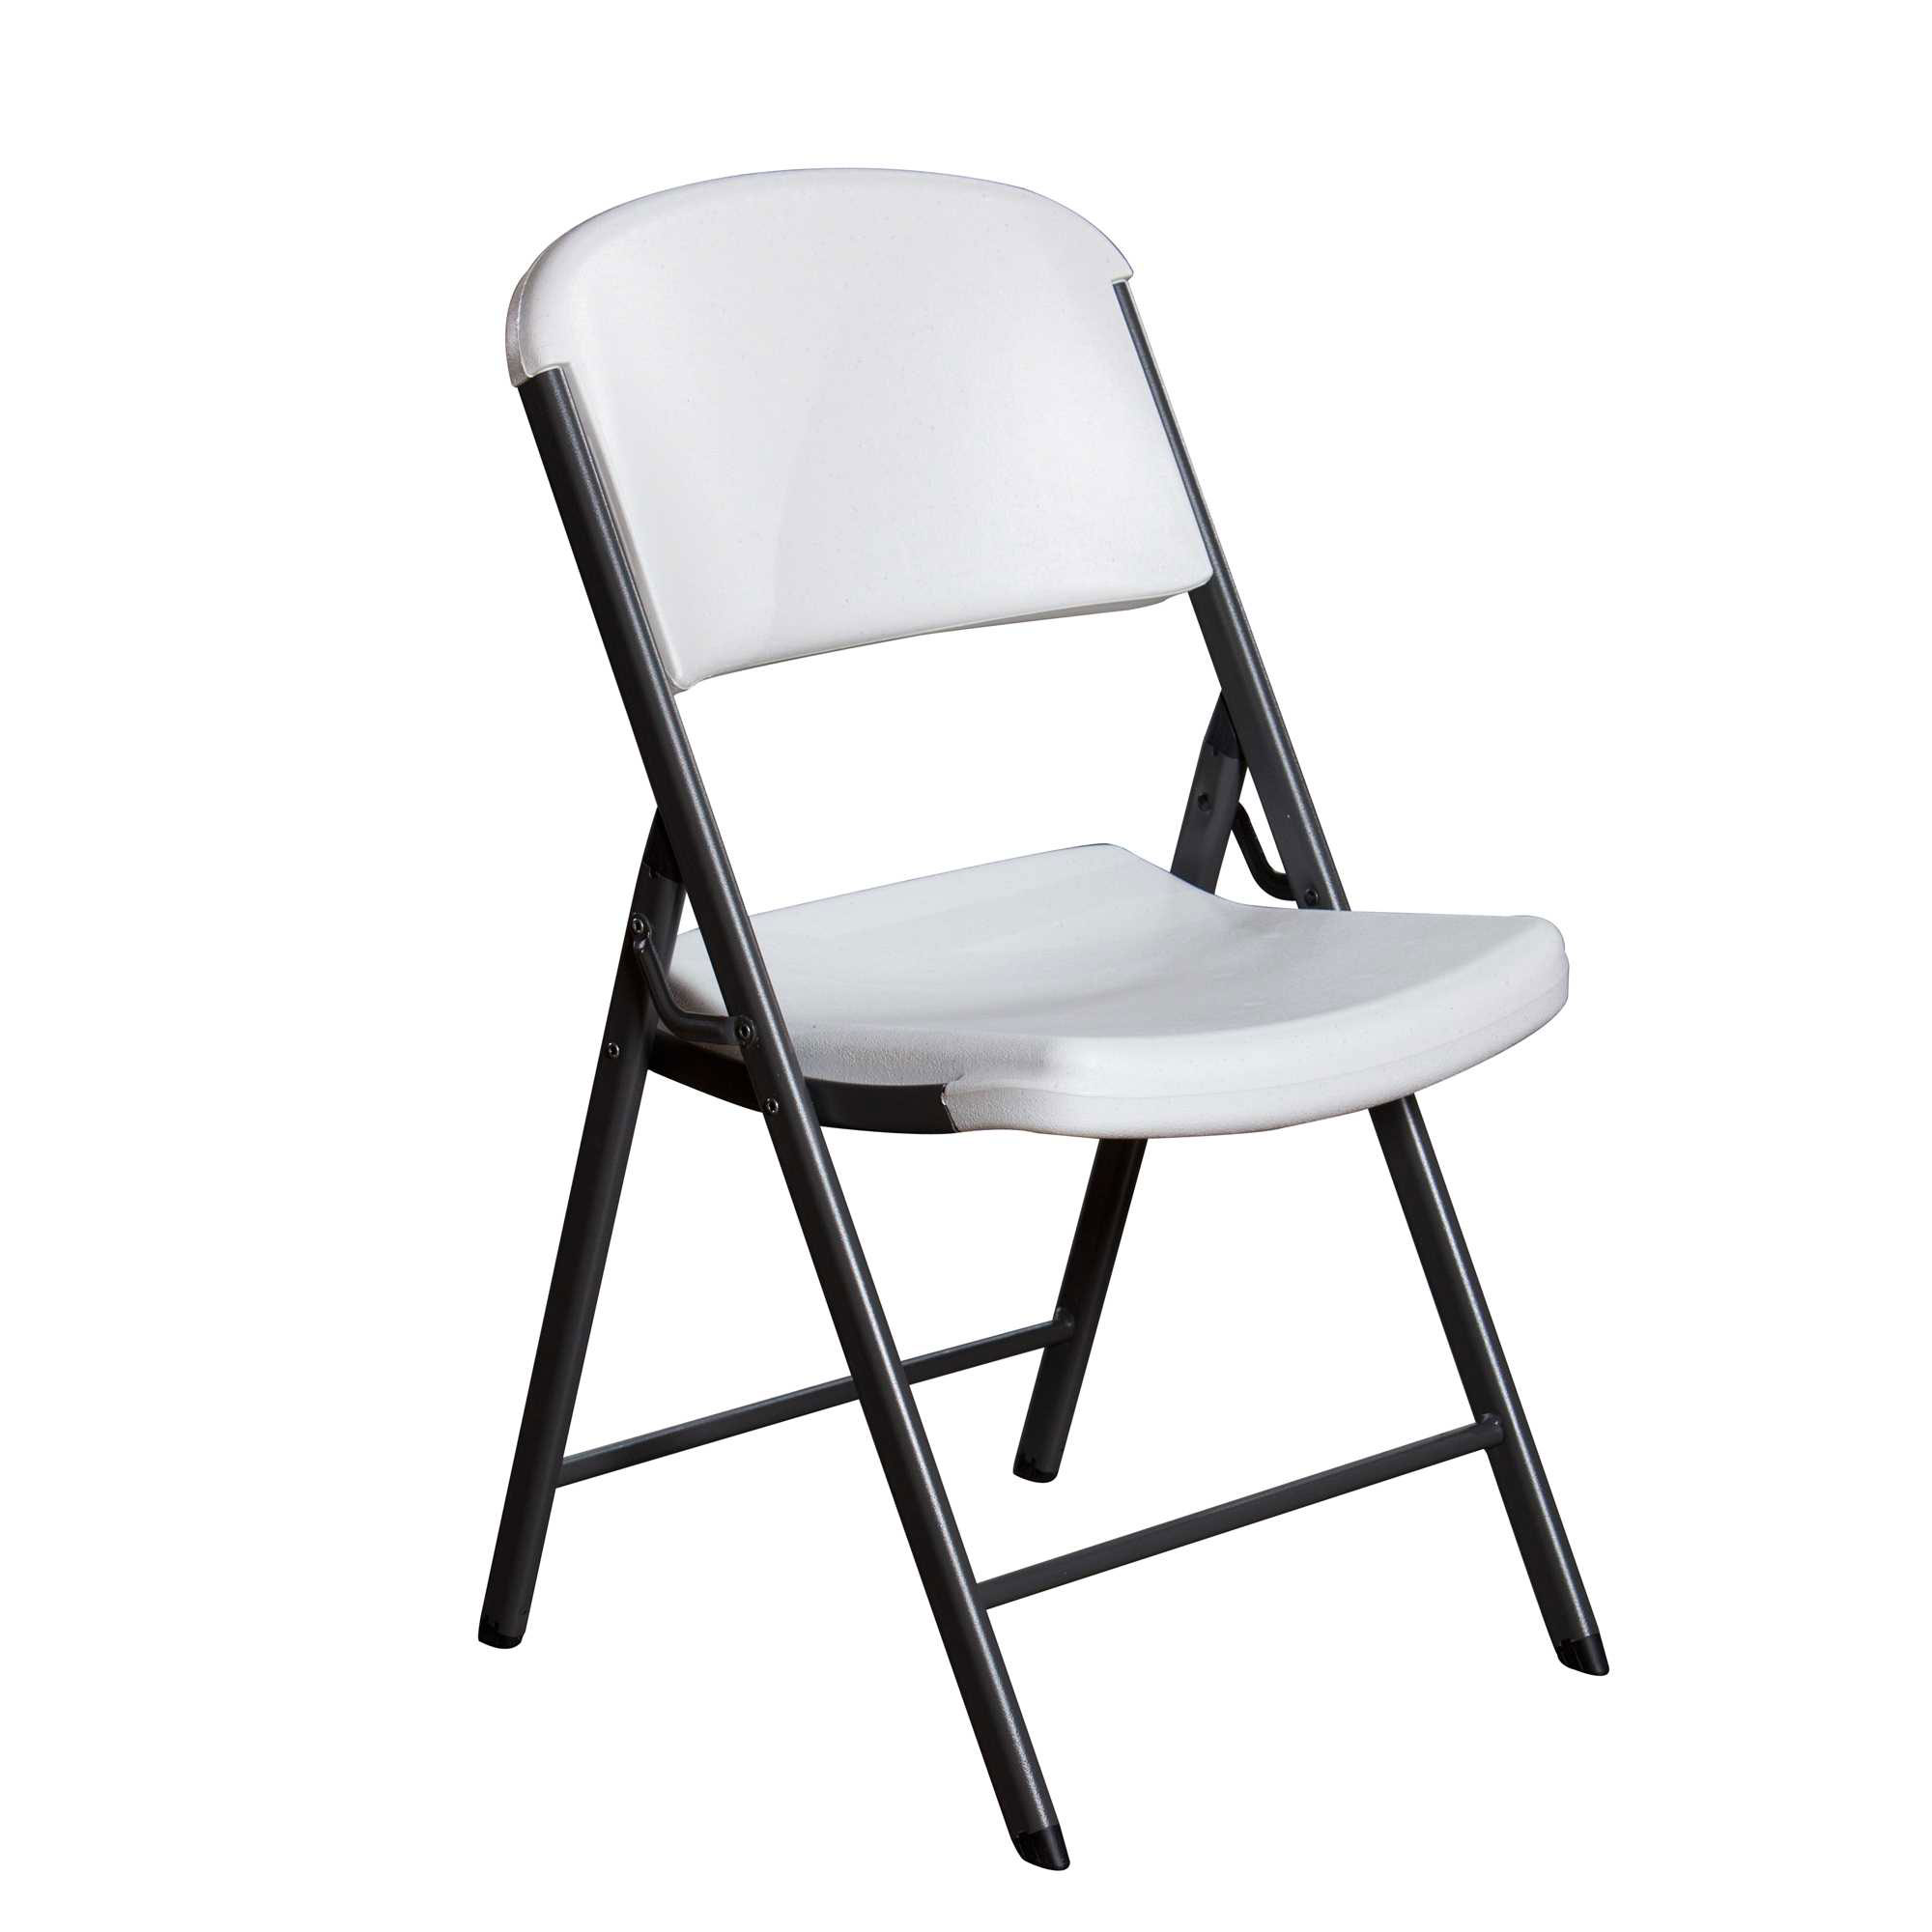 Foldable Chair 32 Pack Lifetime Chairs White Plastic Sale Today In Bulk